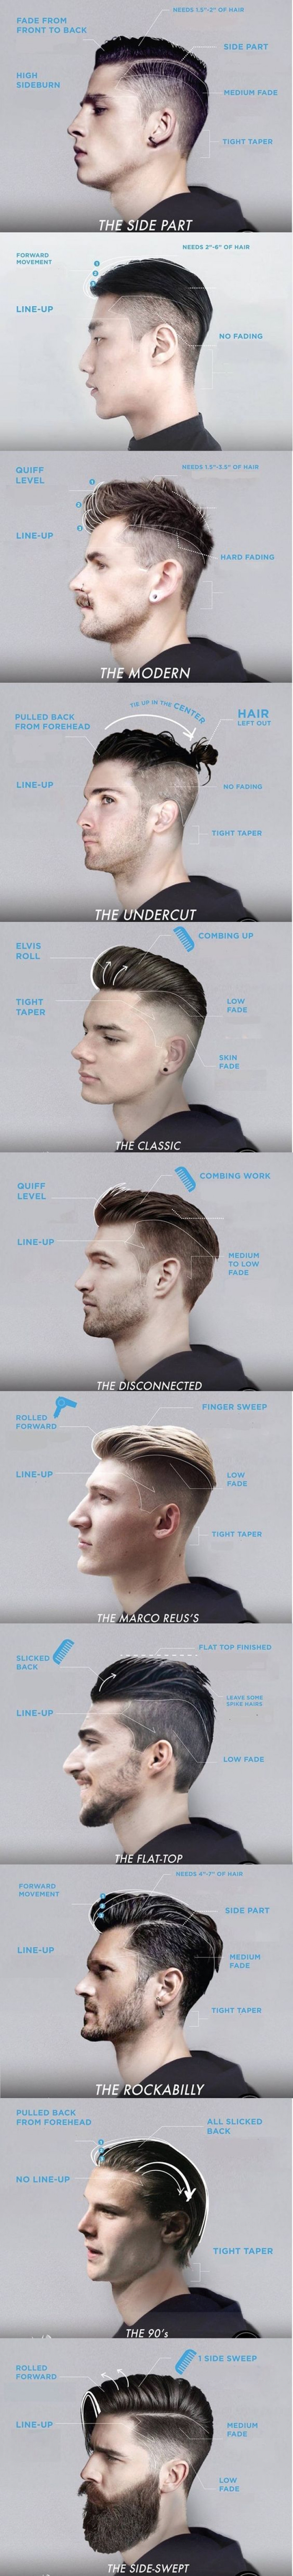 8 Hair Styles To Make You Look Cooler